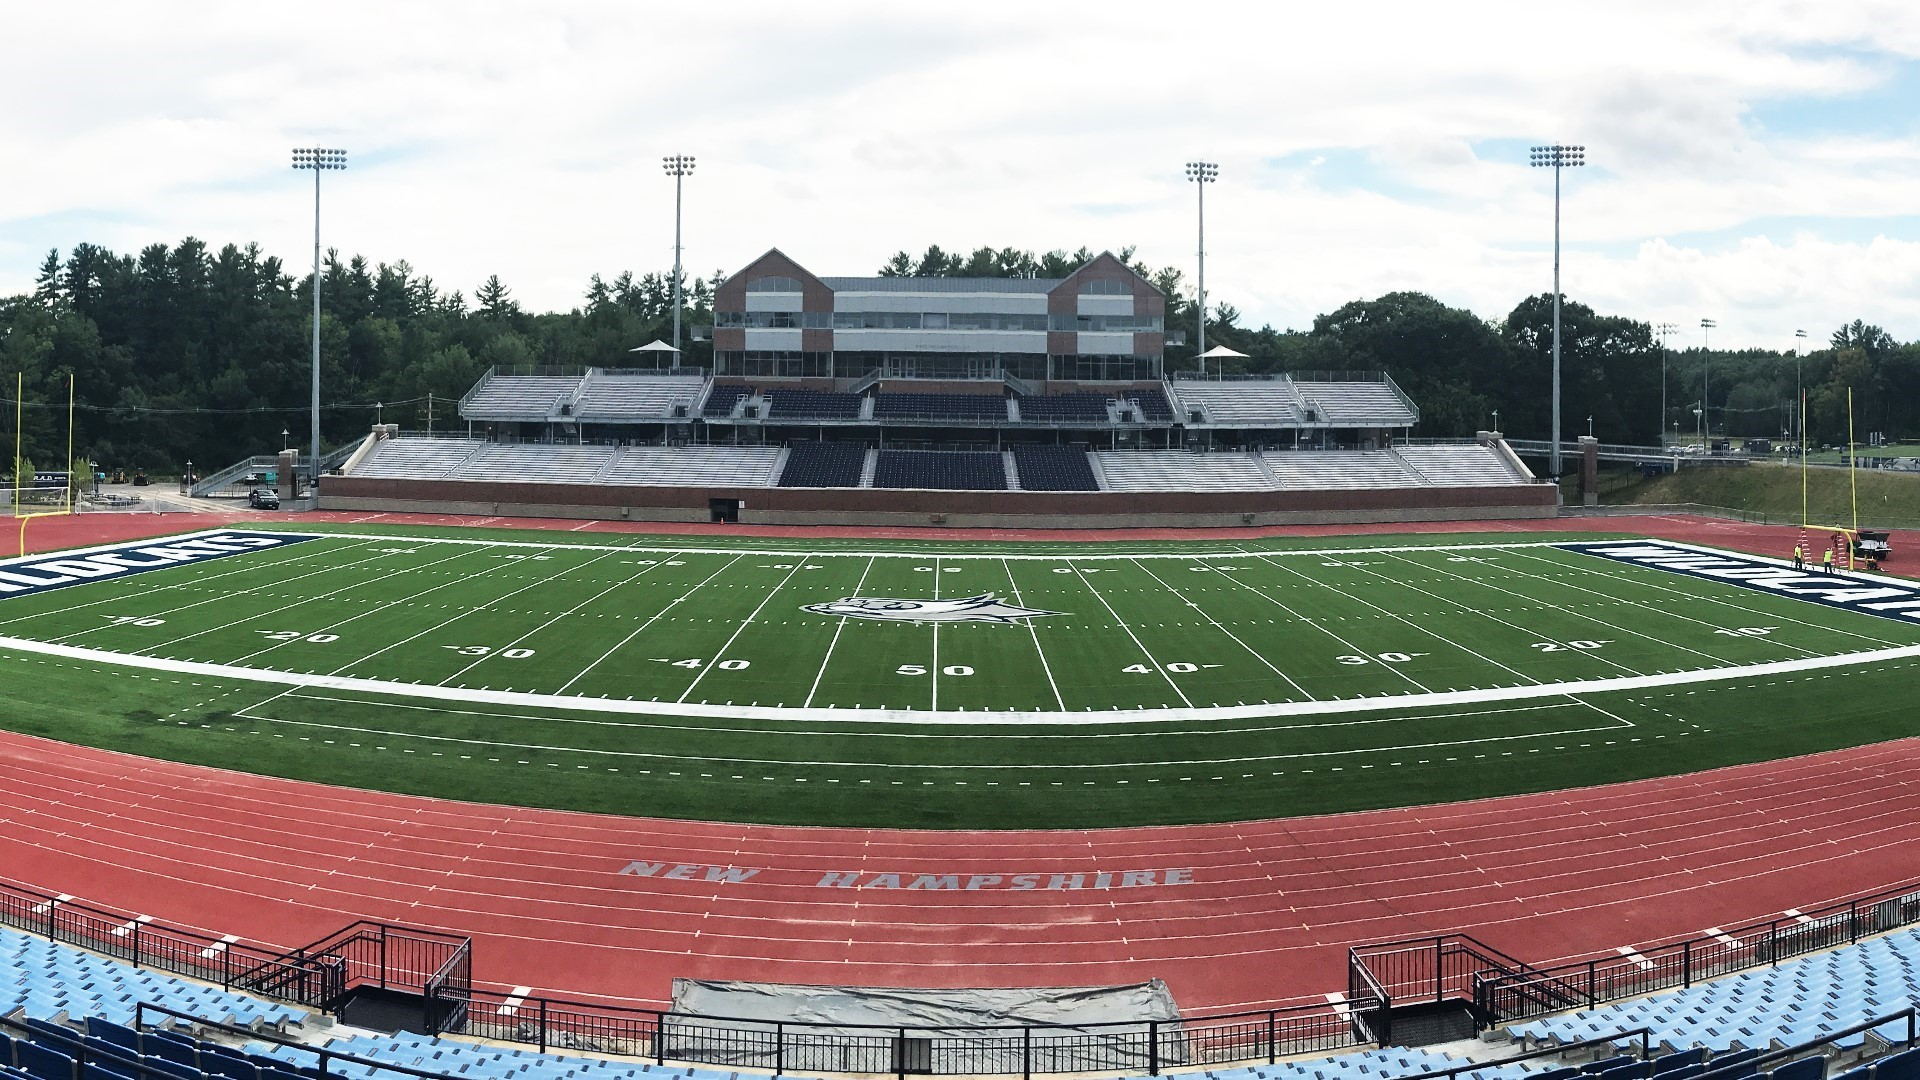 UNIVERSITY OF NEW HAMPSHIRE PLAYING ON NEW SHAW SPORTS TURF FIELD Image